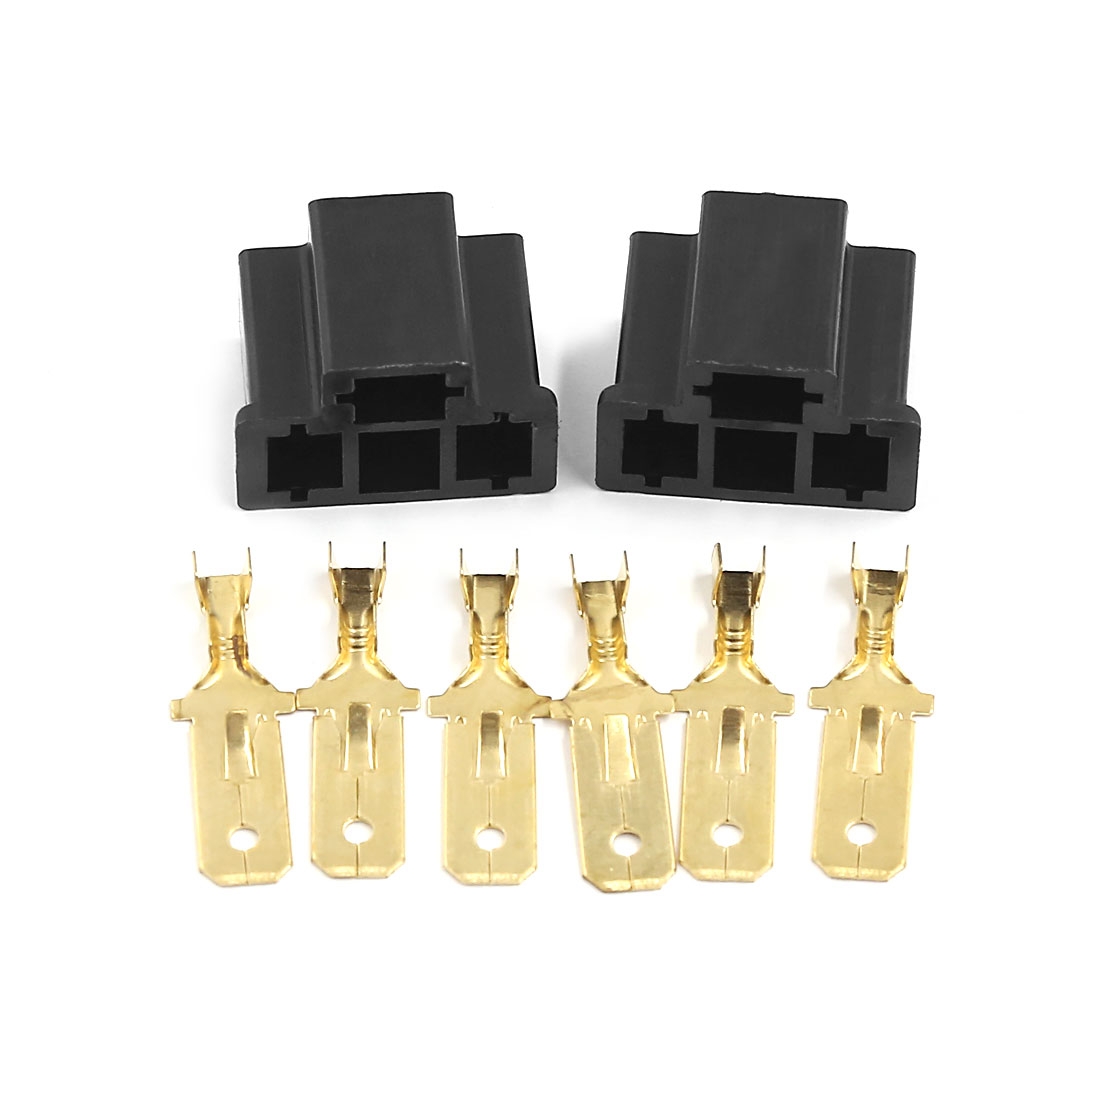 2 Sets Car Socket Xenon Light Bulb Truck Connector for H4/9003/HB2